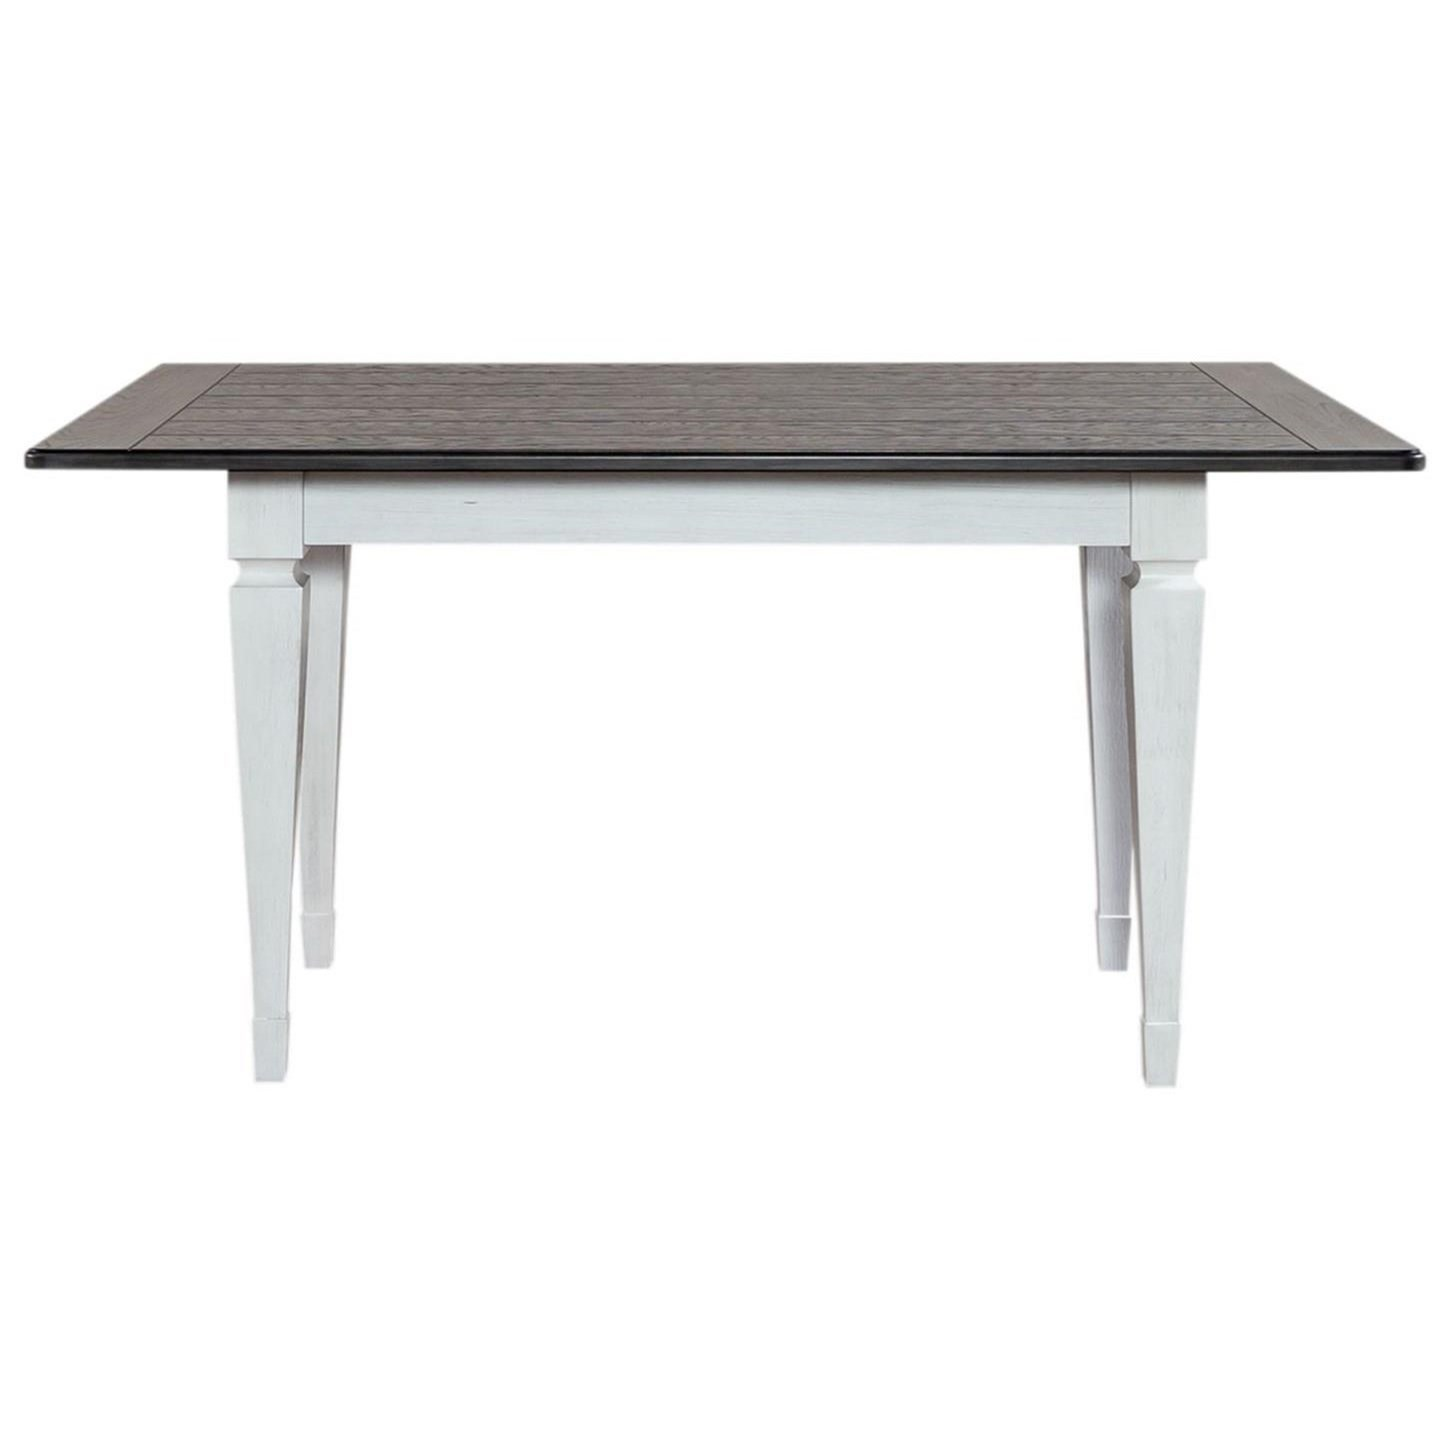 Allyson Park Nook Leg Table by Liberty Furniture at Pilgrim Furniture City